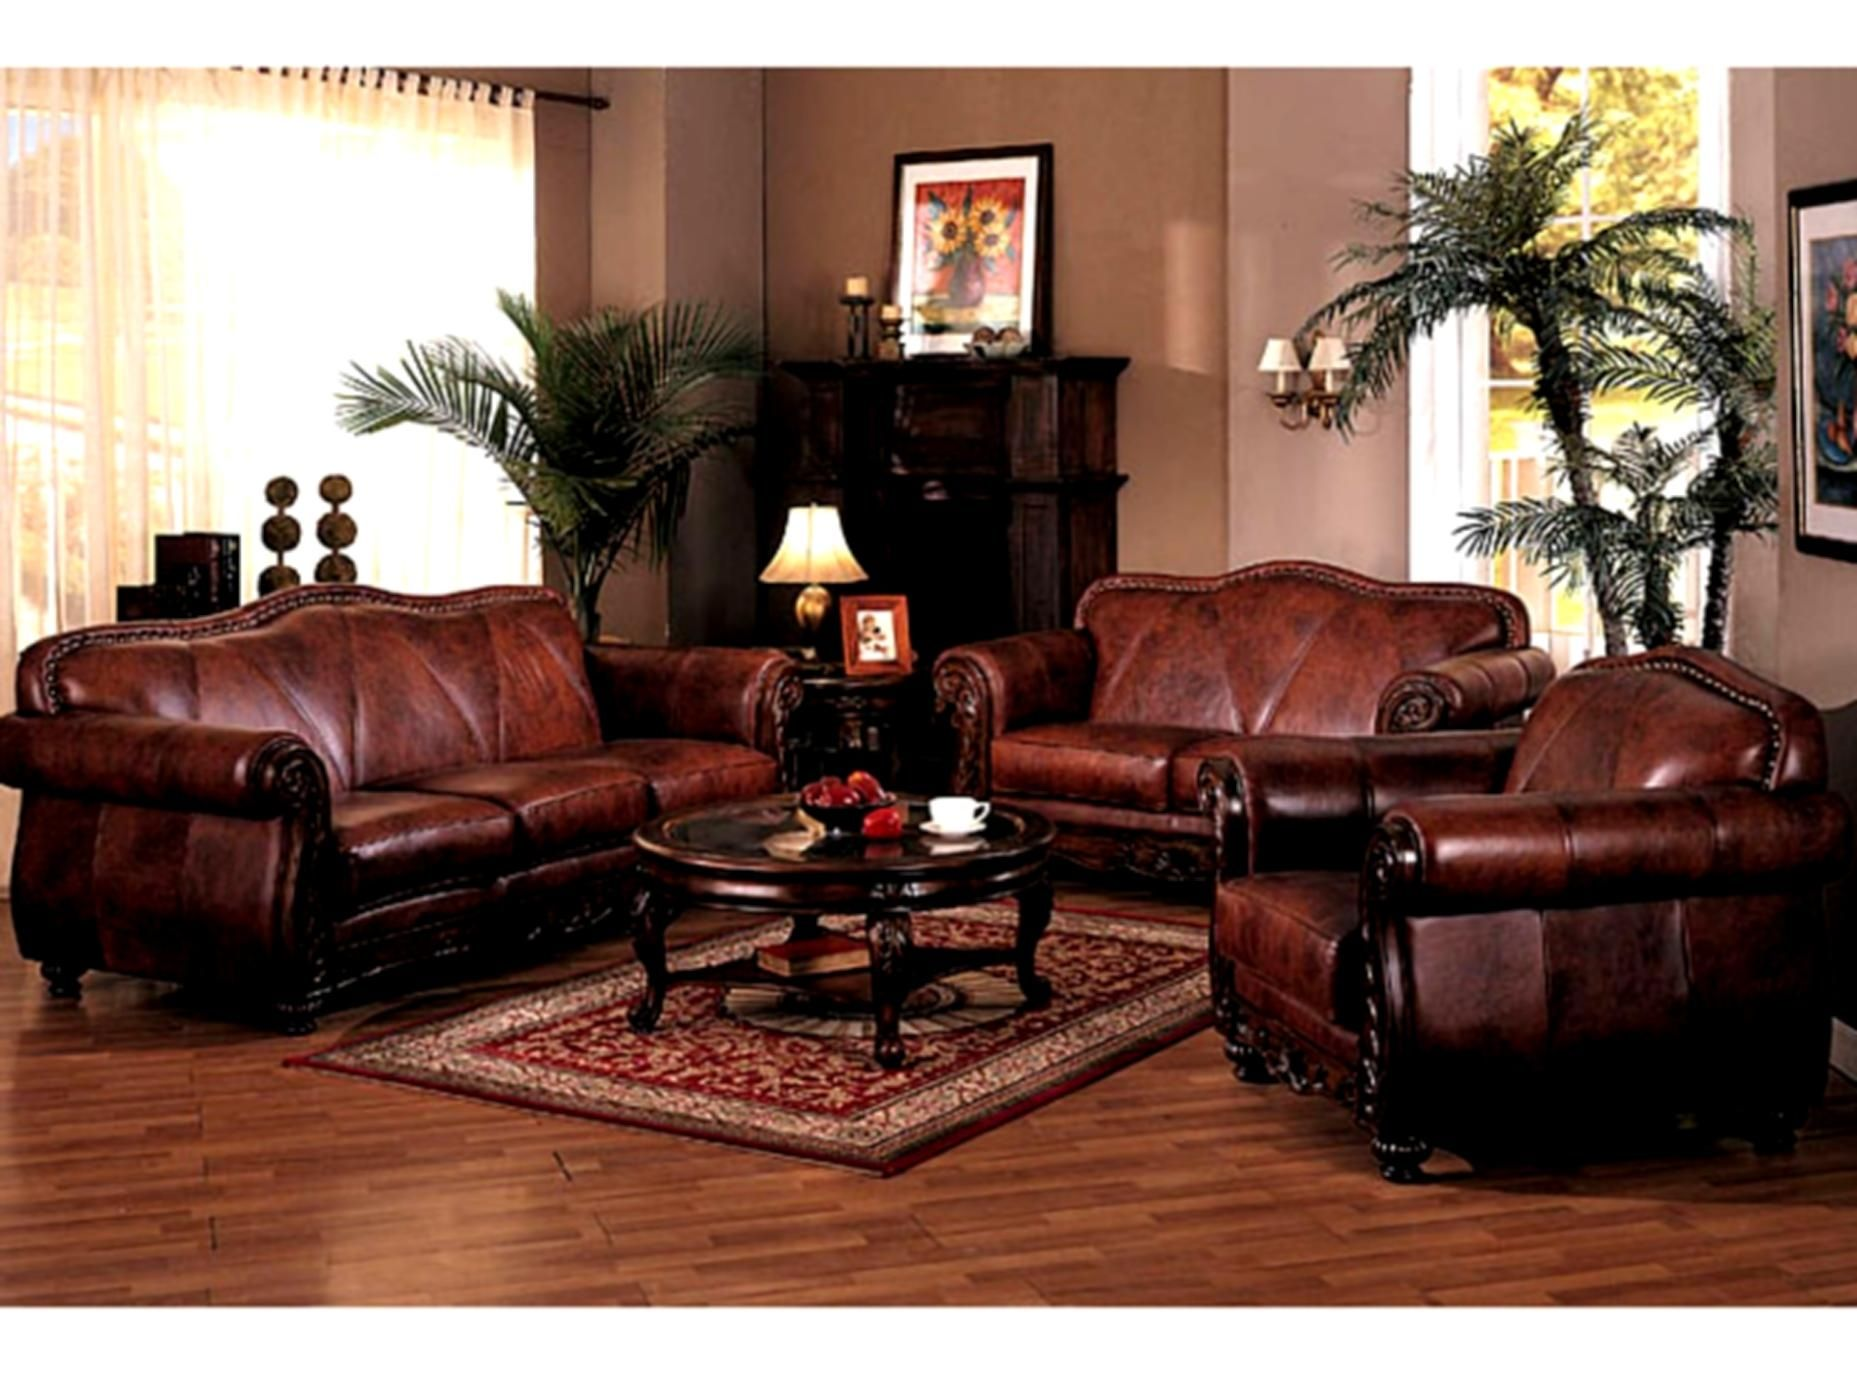 Cool Traditional Couches Living Room Collection Luxurious Leather Sofa With Show Wood